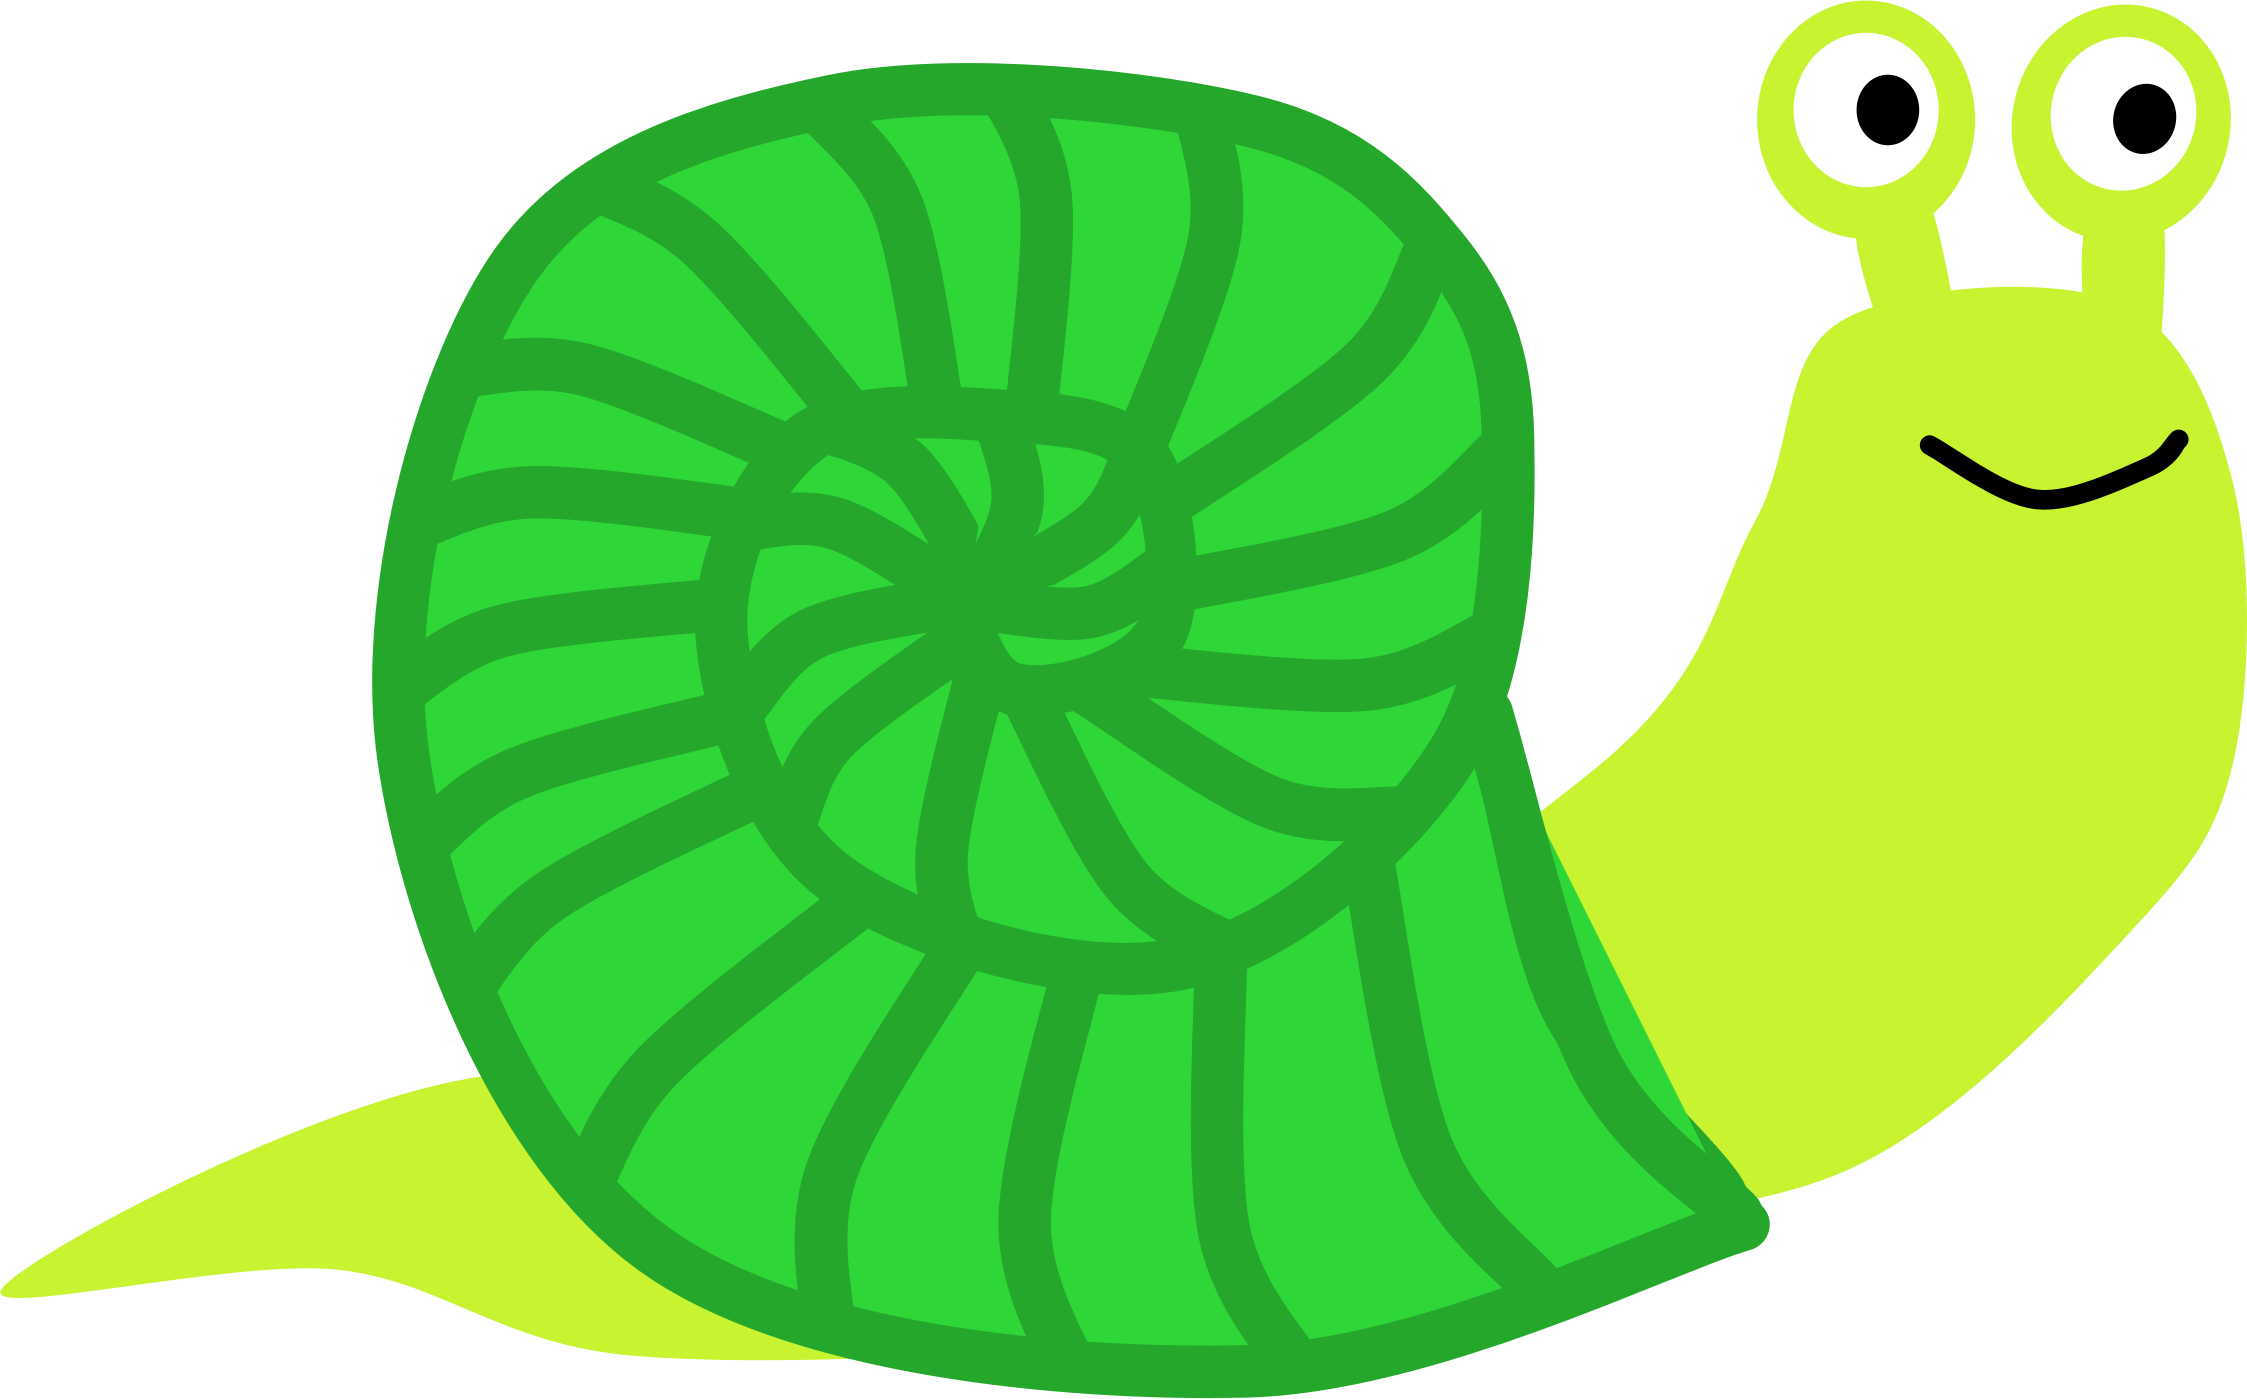 Snail big image png. Shell clipart gastropod